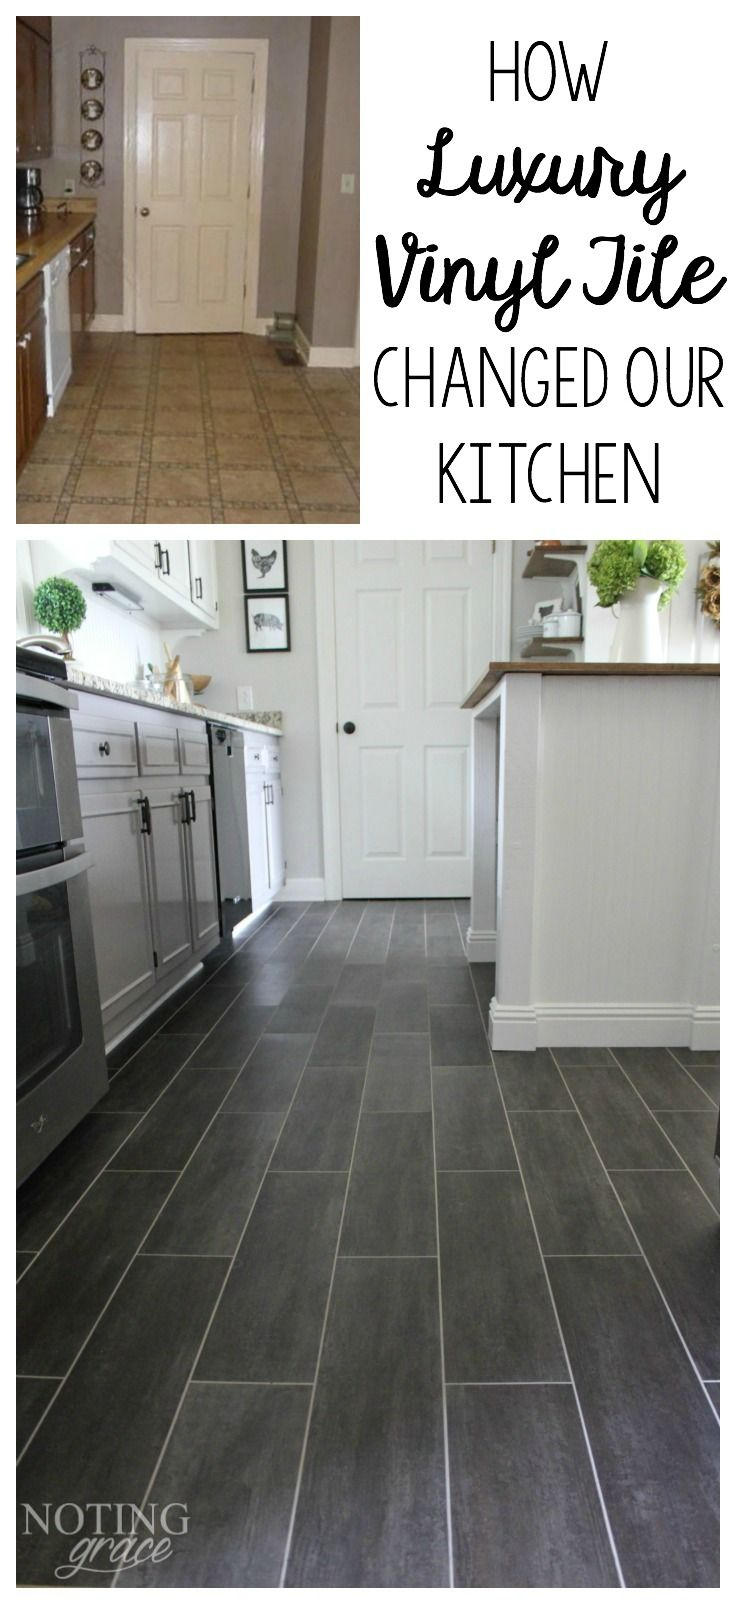 Diy kitchen flooring luxury vinyl tile vinyl tiles and for Vinyl kitchen flooring